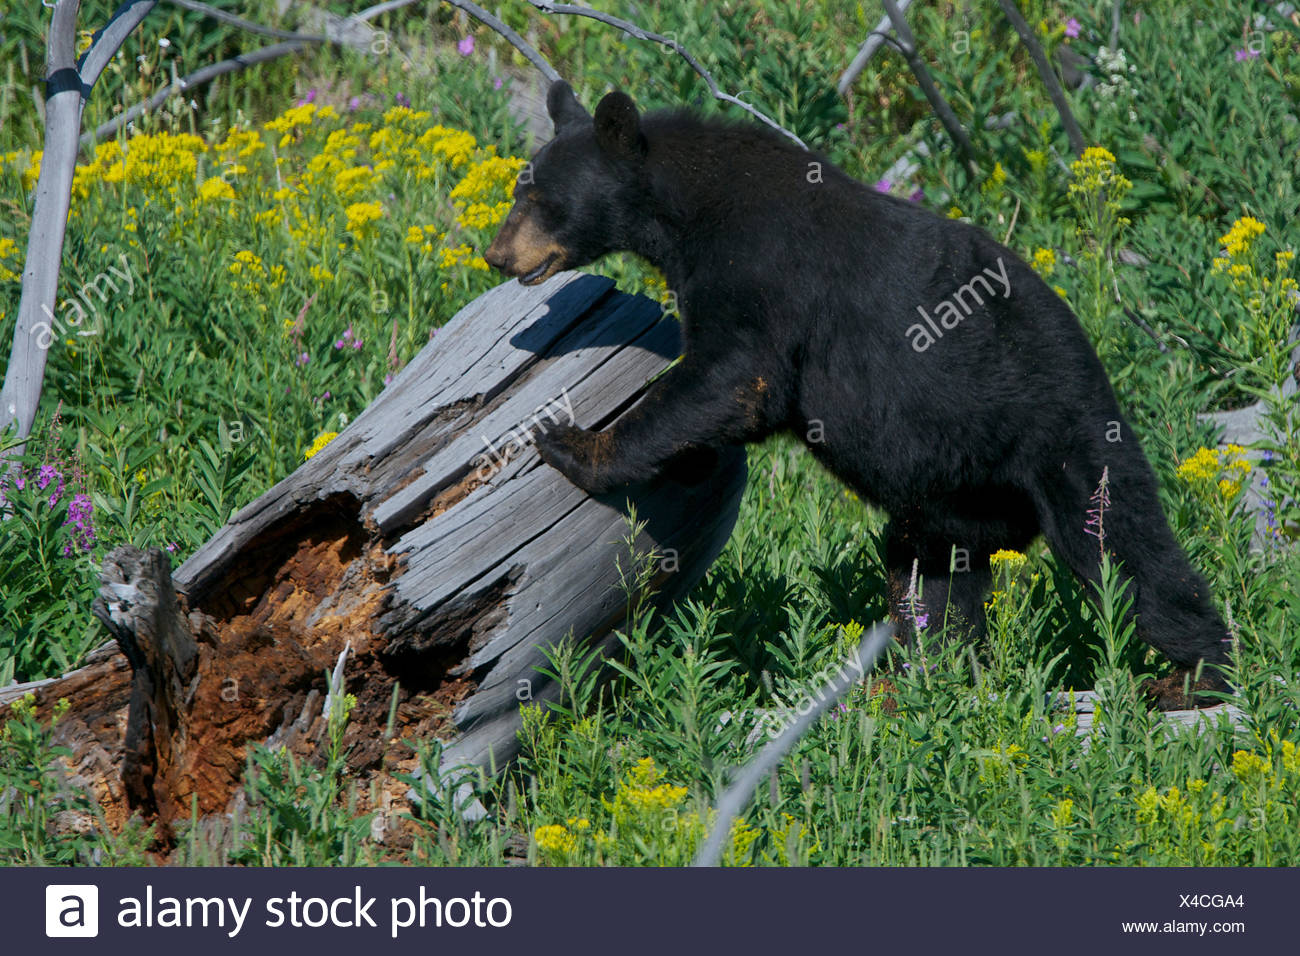 A black bear climbs up onto a dead log. - Stock Image